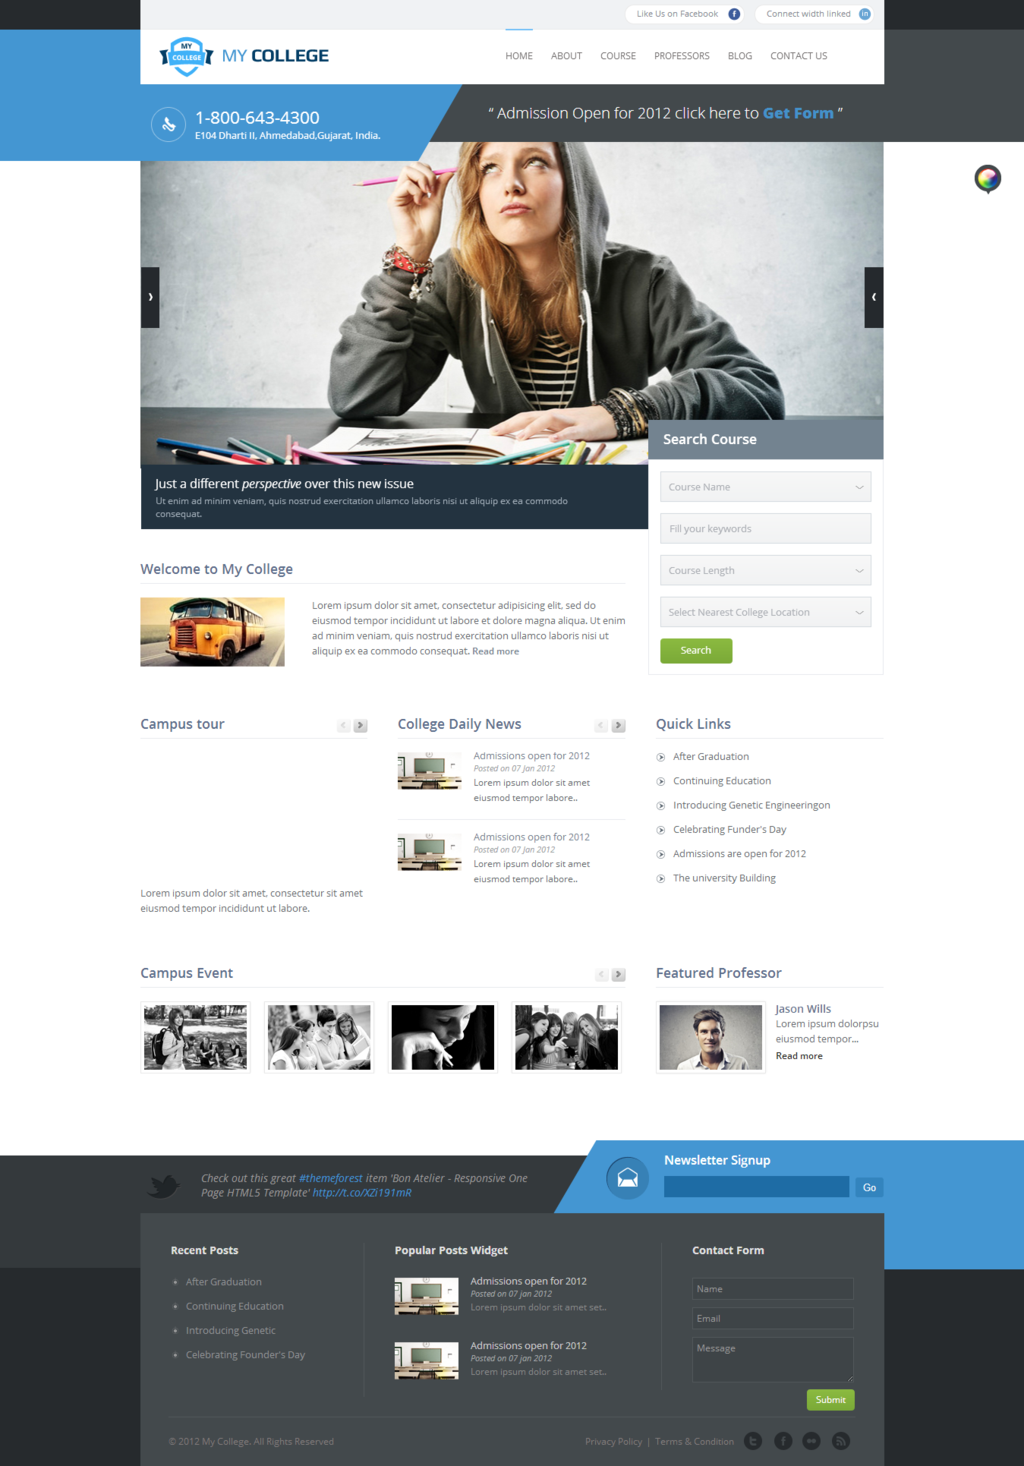 Buy my college responsive education html template by krownthemes on themeforest my college is a modern college university school html template